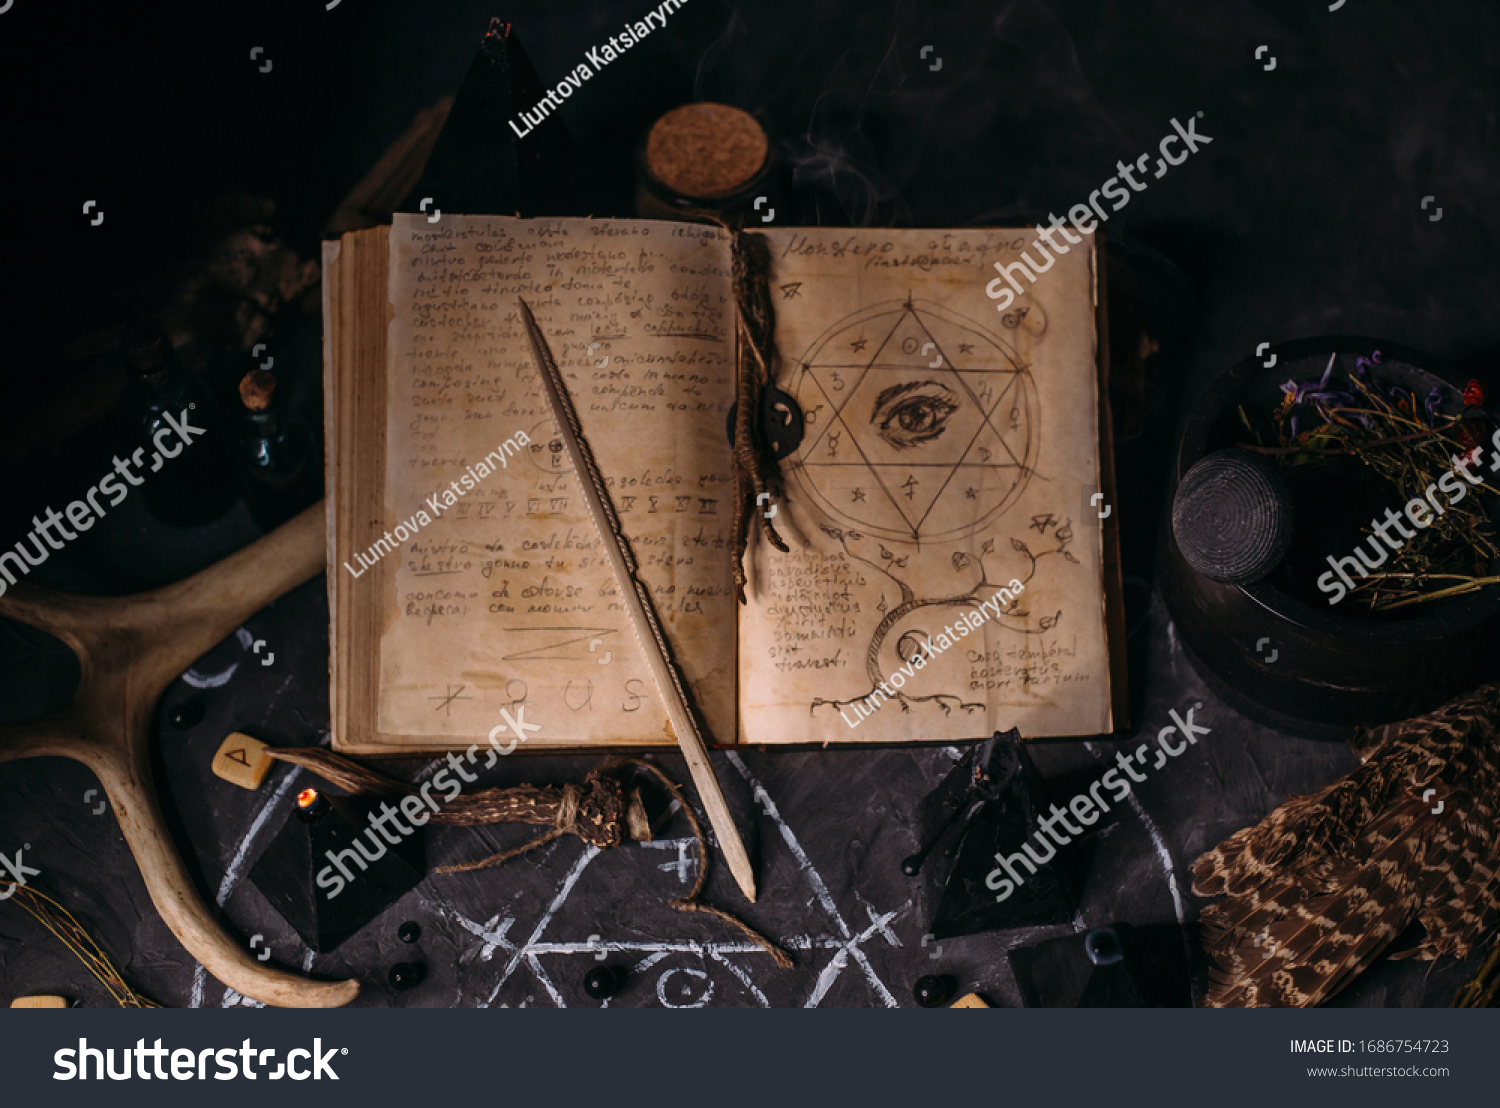 Open old book with magic spells, runes, black candles on witch table. Occult, esoteric, divination and wicca concept. Halloween vintage background #1686754723